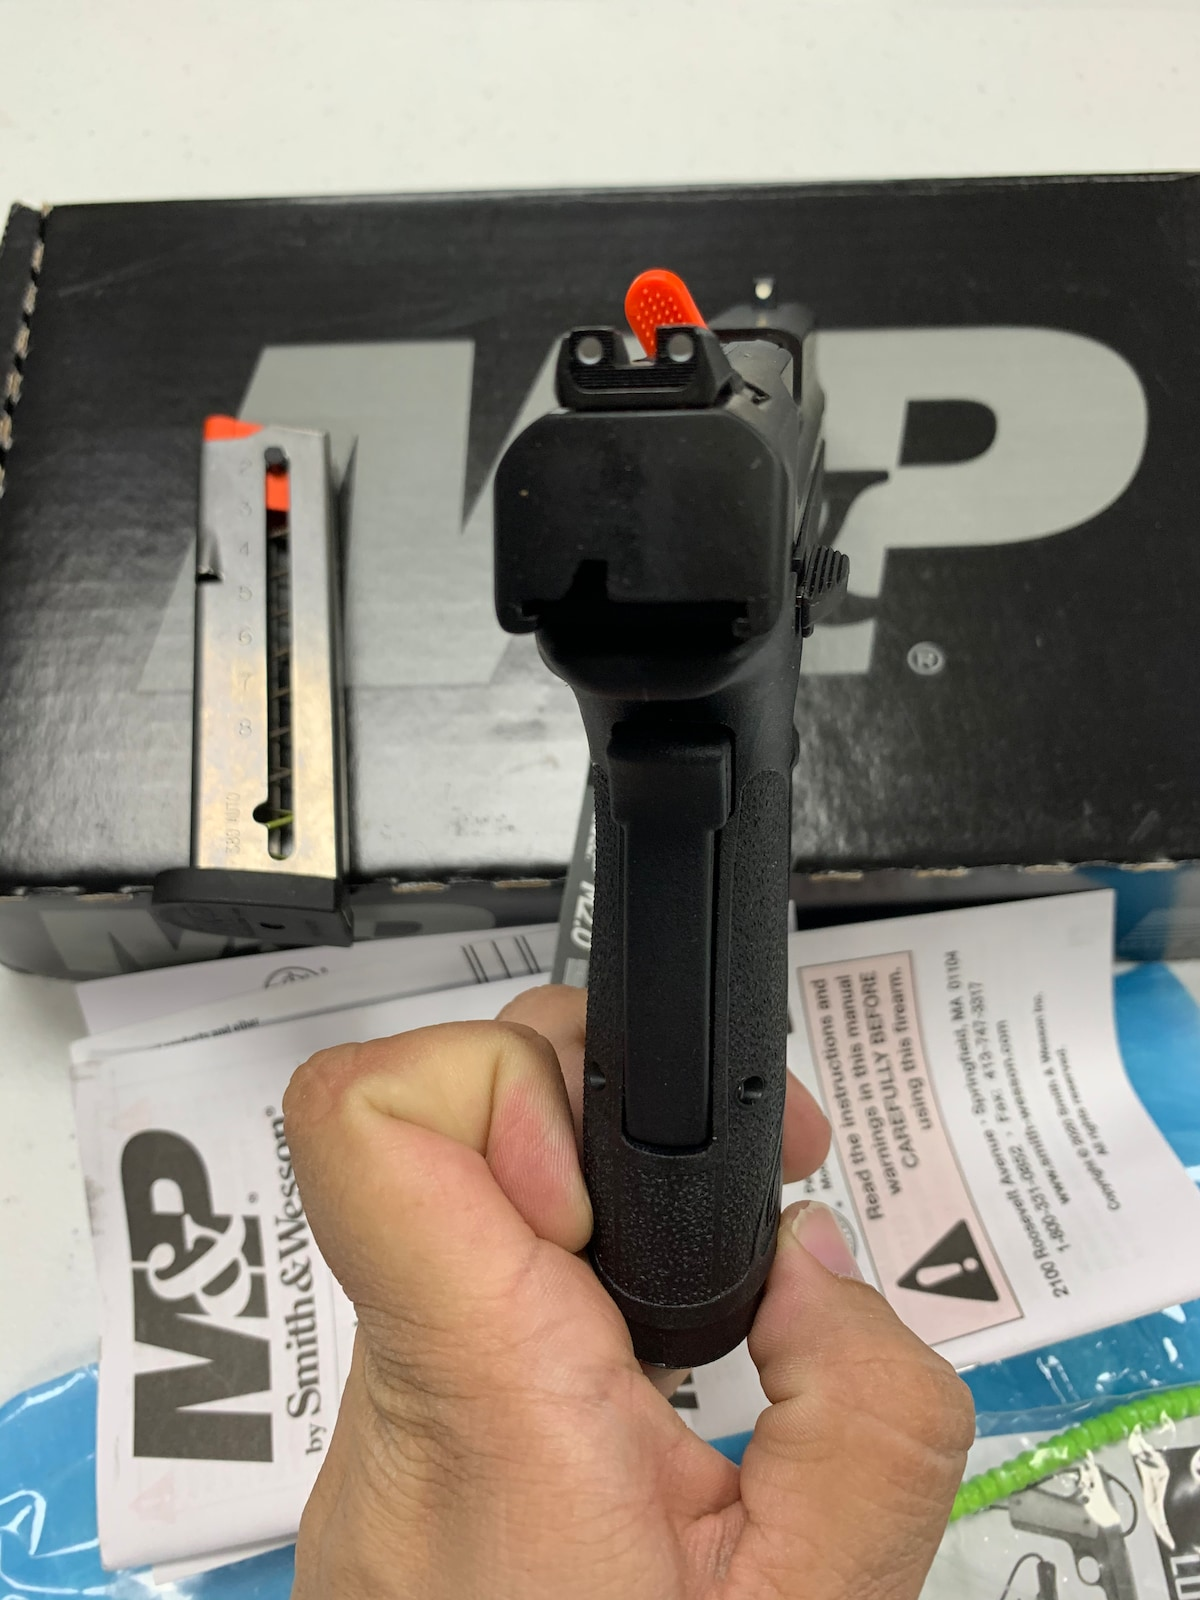 SMITH & WESSON M&P 380 SHIELD EZ M2.0 EXTERNAL THUMB SAFETY